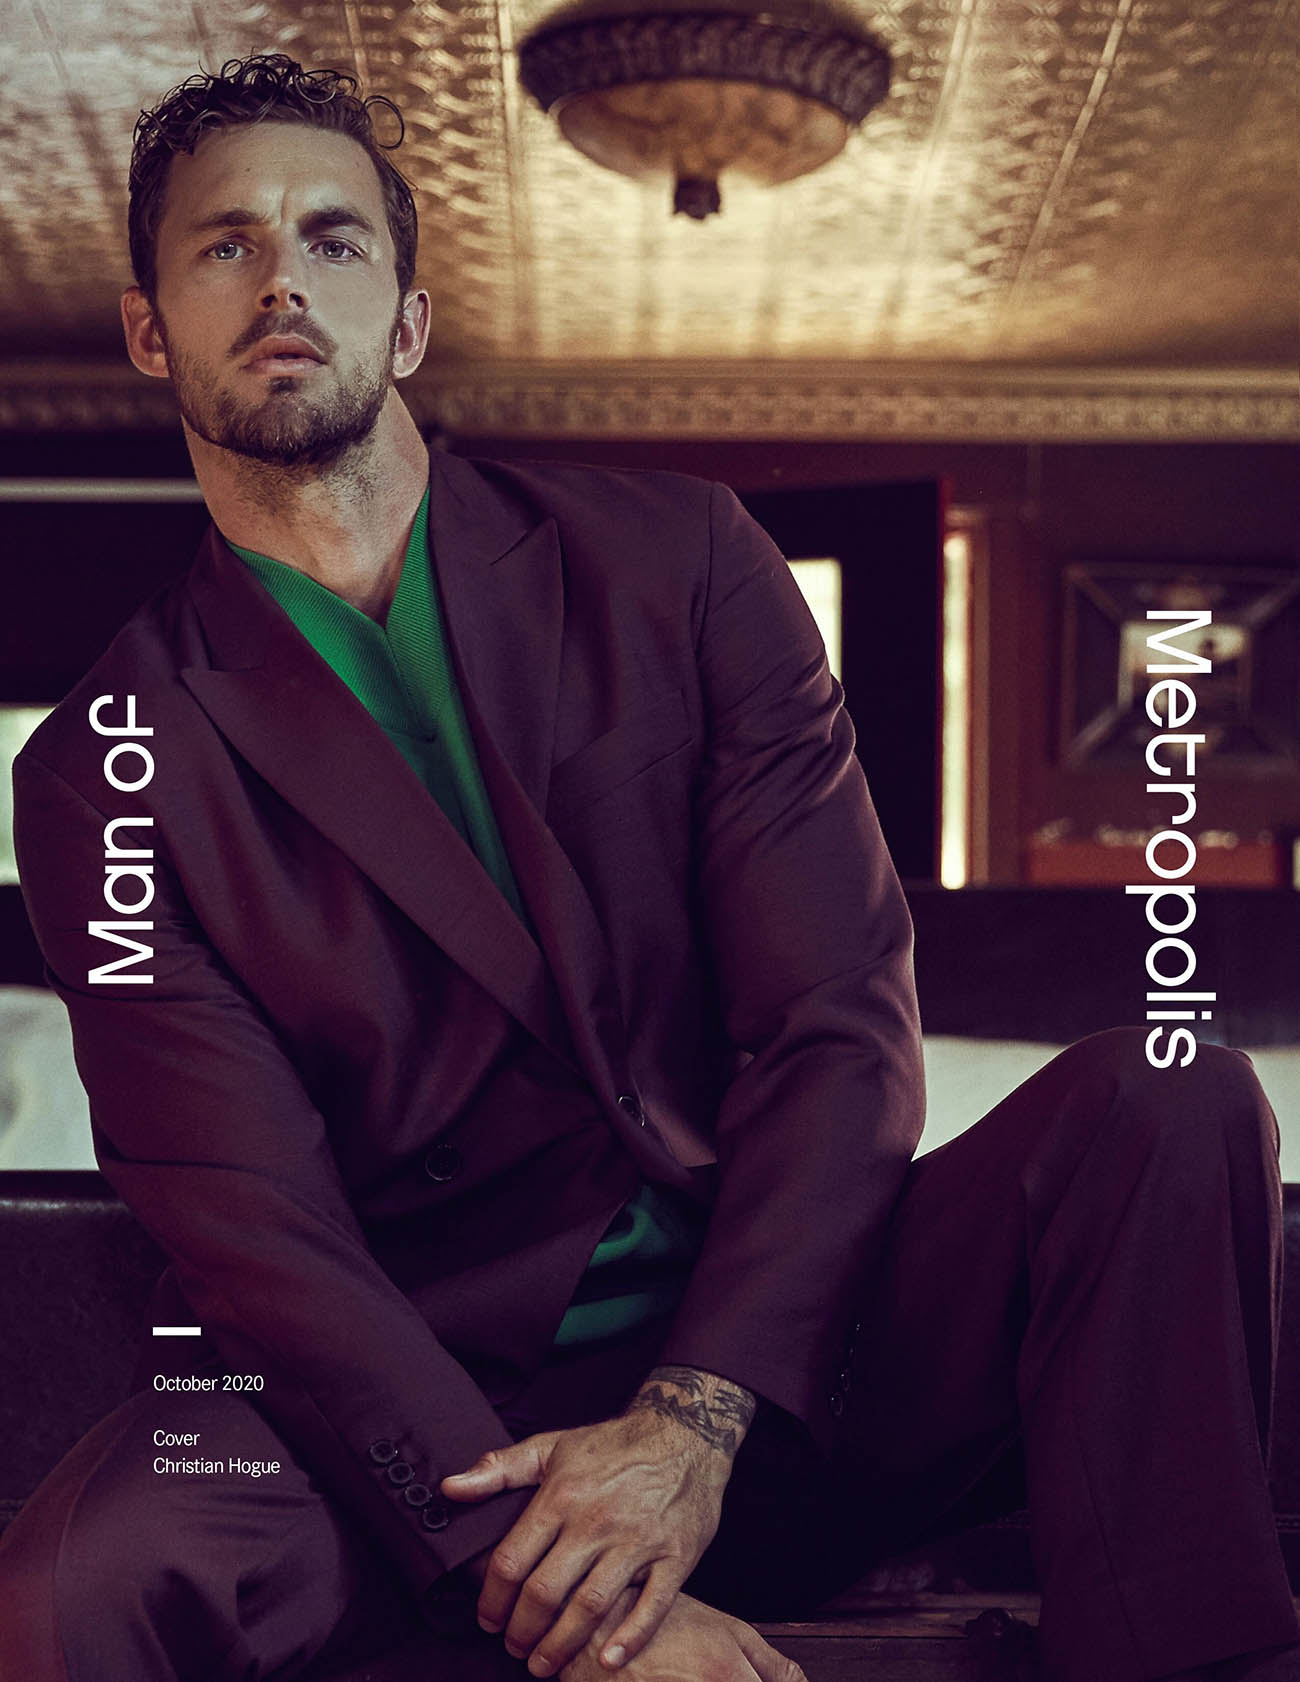 Christian Hogue covers Man of Metropolis October 2020 by Santiago Bisso